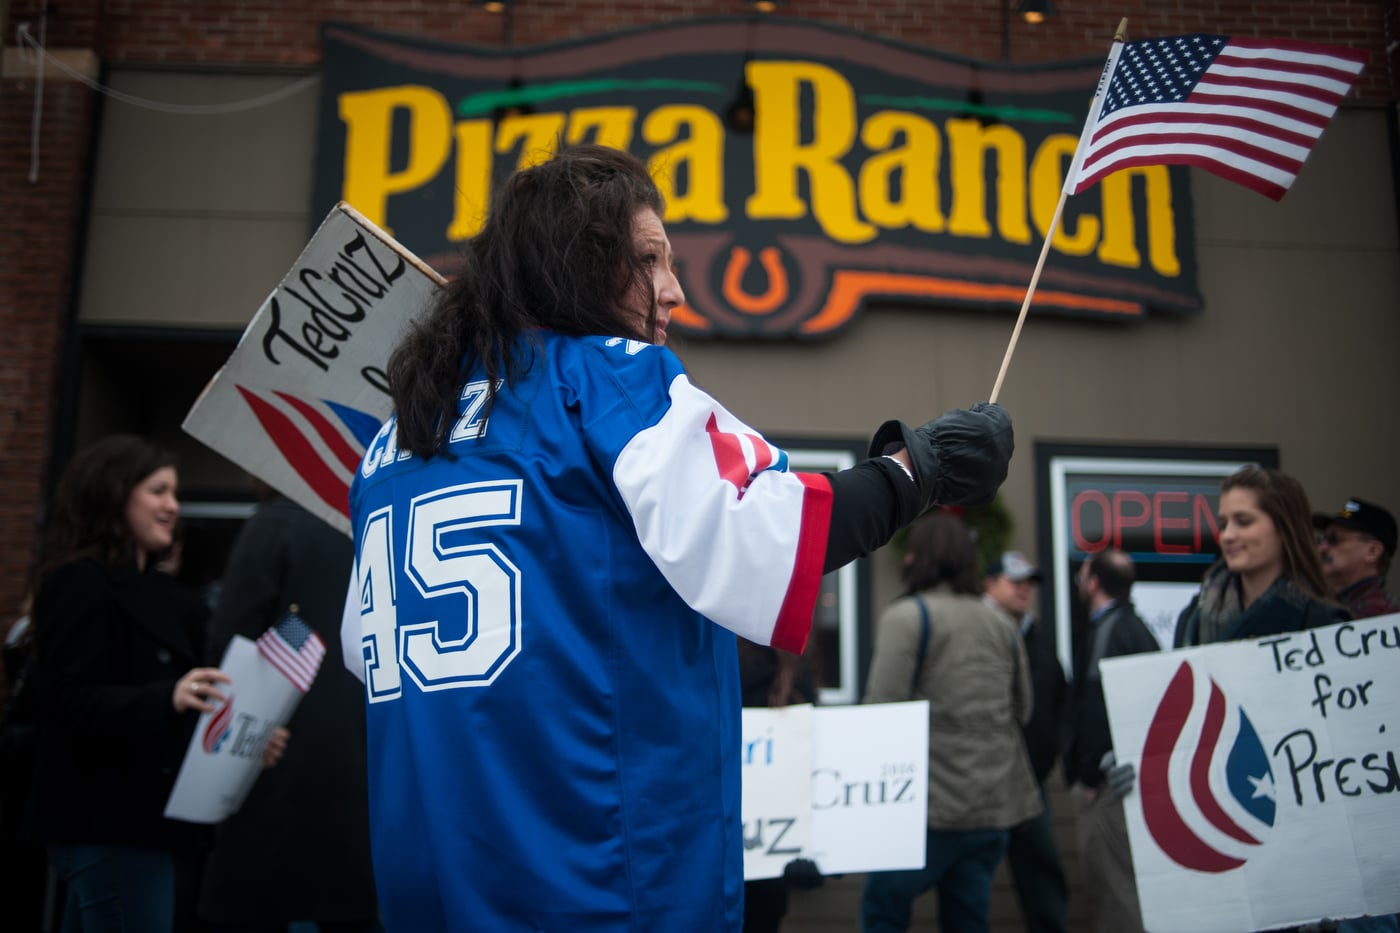 Deb Bolding waves a flag as she waits for U.S. Republican presidential candidate Ted Cruz to arrive at a campaign stop at a Pizza Ranch restaurant in Pocahontas, Iowa January 7, 2016. REUTERS/Mark Kauzlarich